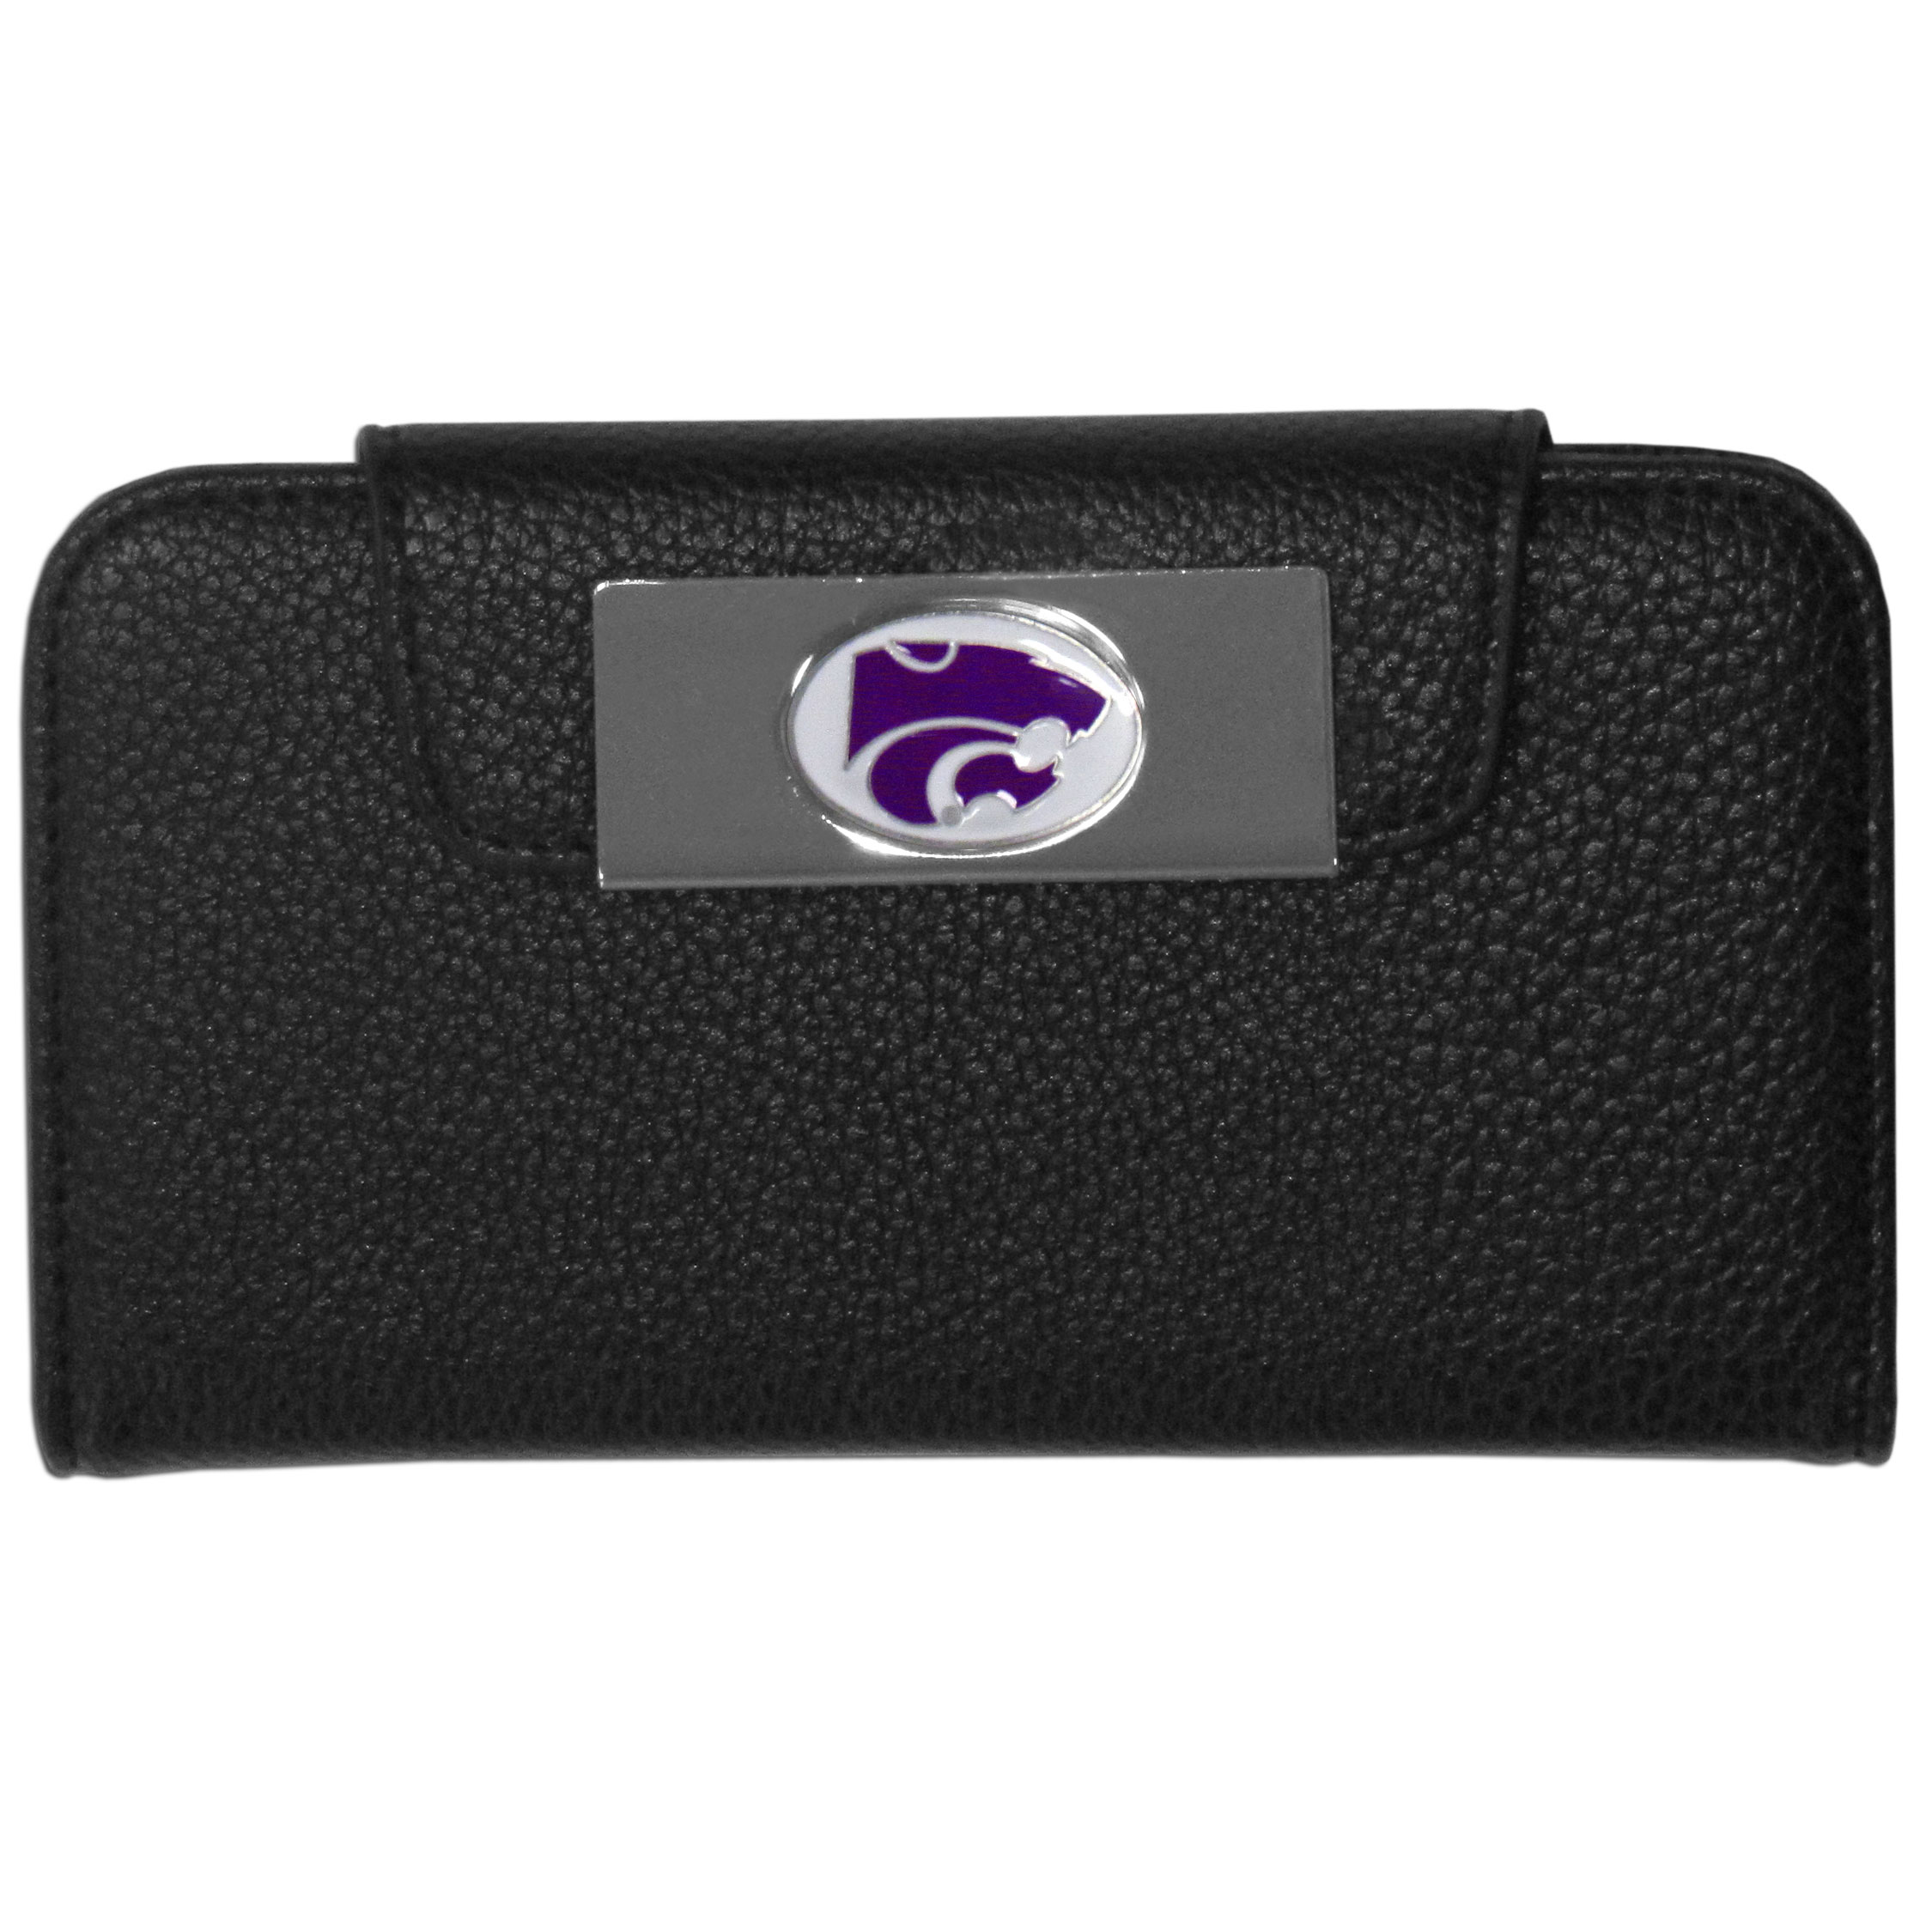 Kansas St. Wildcats Samsung Galaxy S4 Wallet Case - This new & wildly popular case is ideal for those who like to travel light! The stylish case has an inner hard shell that securely holds your phone while allowing complete access to the phone's functionality. The flip cover has slots for credit cards, business cards and identification. The magnetic flip cover has a metal Kansas St. Wildcats emblem on a high polish chrome backing. Fits the Samsung Galaxy S4